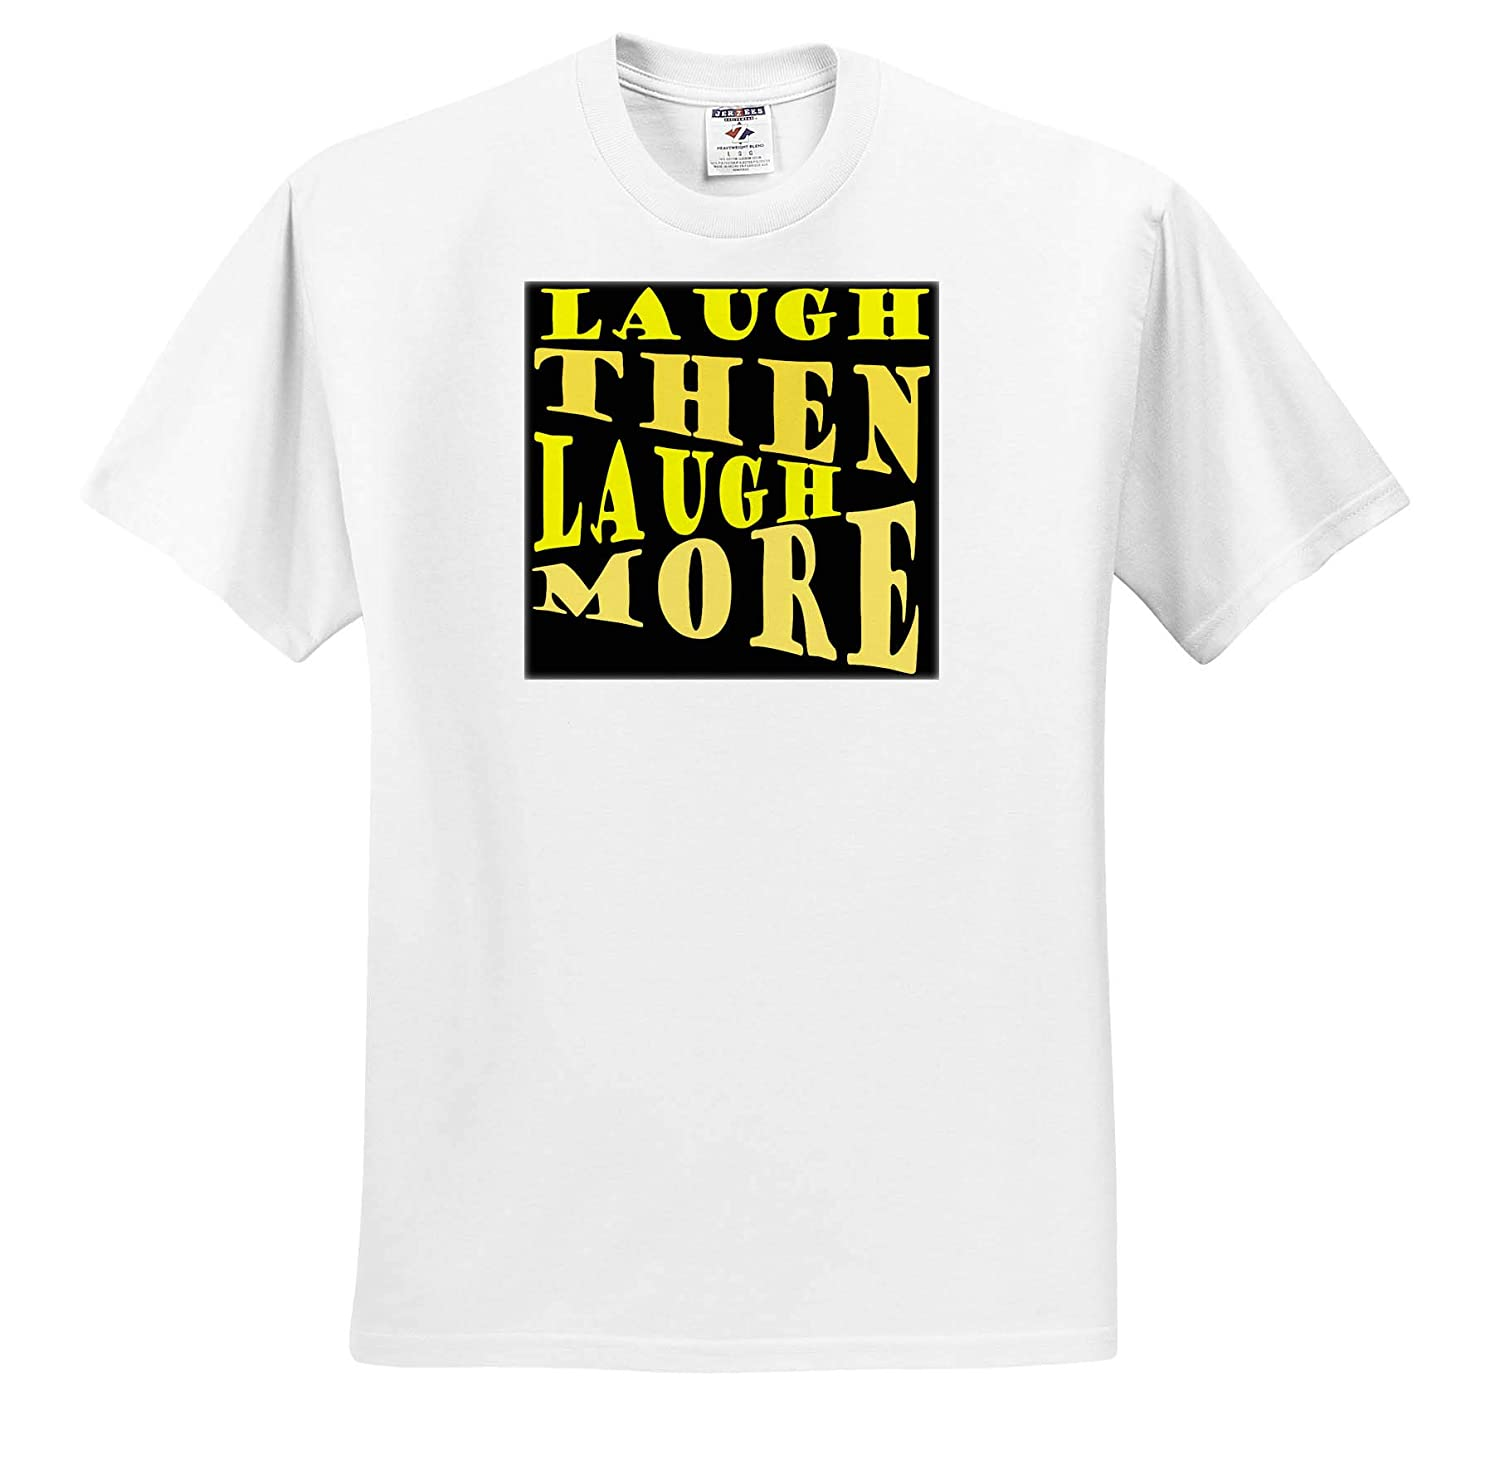 Laugh and Laugh More Happy Vibes Text Laughing Out Loud Text Design 3dRose Taiche ts/_308650 Adult T-Shirt XL